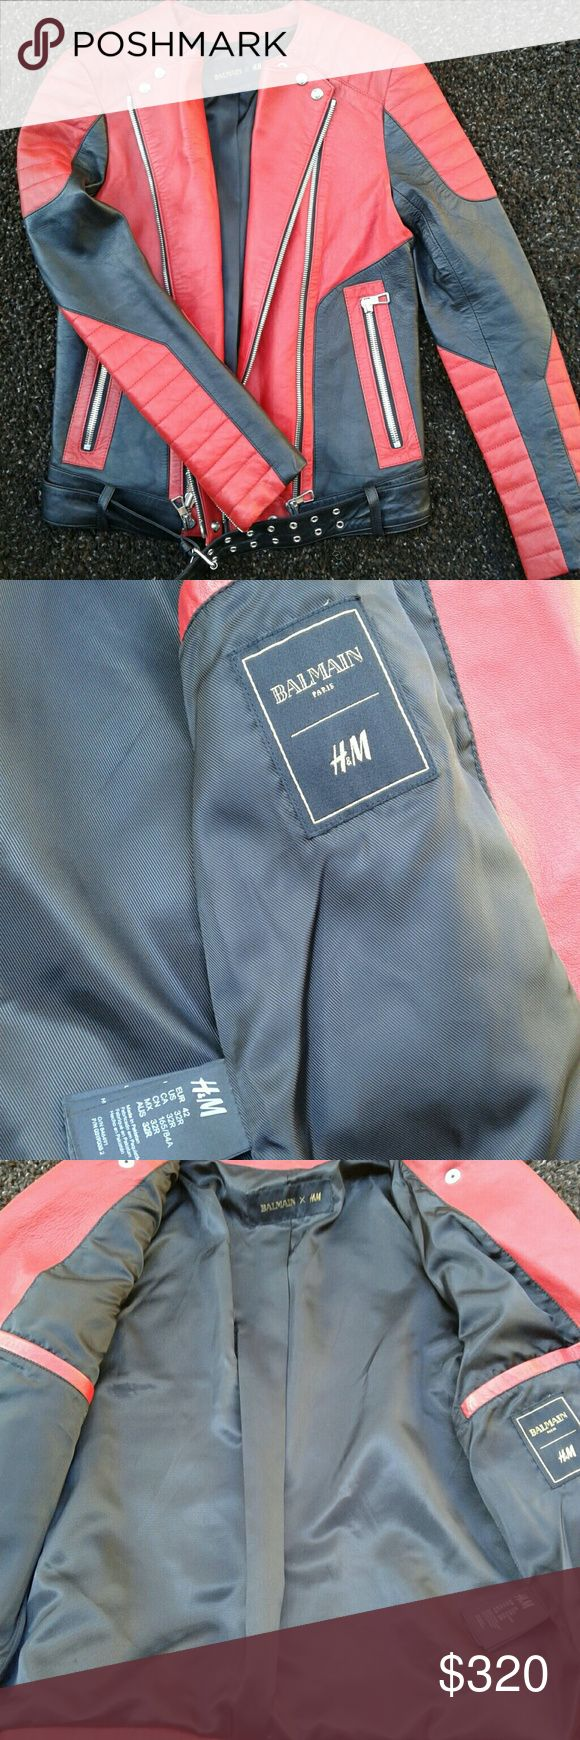 Balmain H&M Men's Leather Jacket Black & Red Stunning in New condition.  Balmain of Paris Moto jacket. Balmain Jackets & Coats Performance Jackets